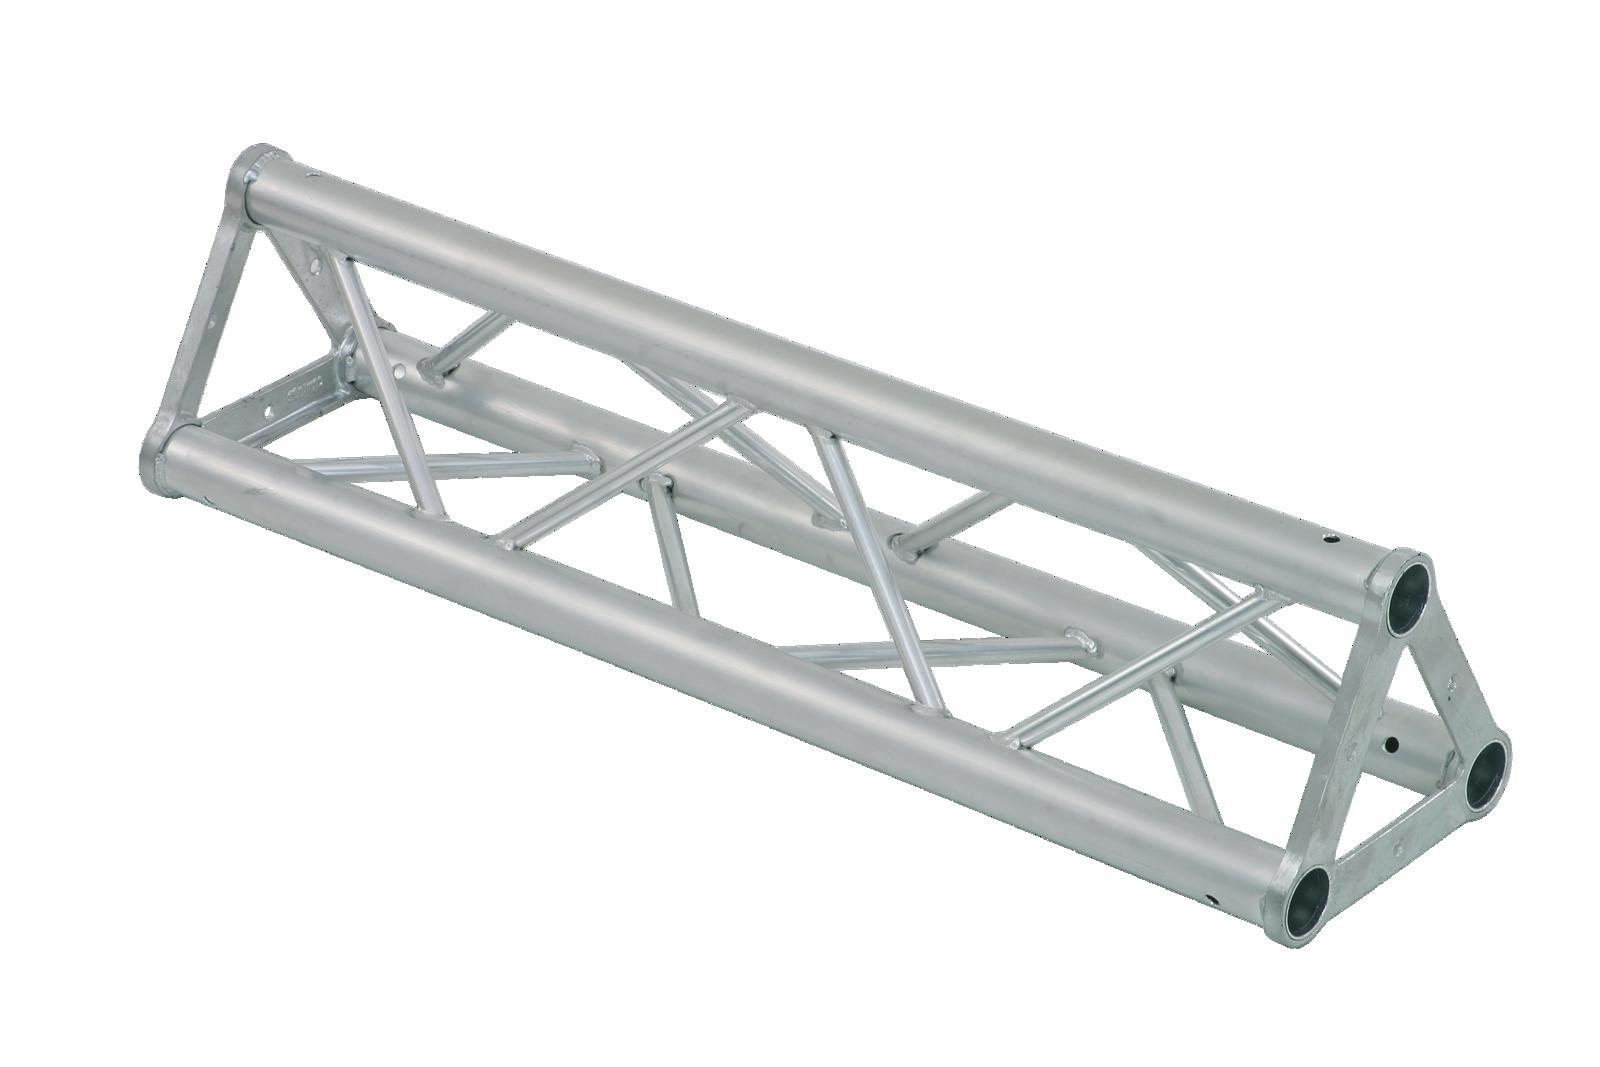 ALUTRUSS TRISYSTEM PST-400 a 3 vie traverse